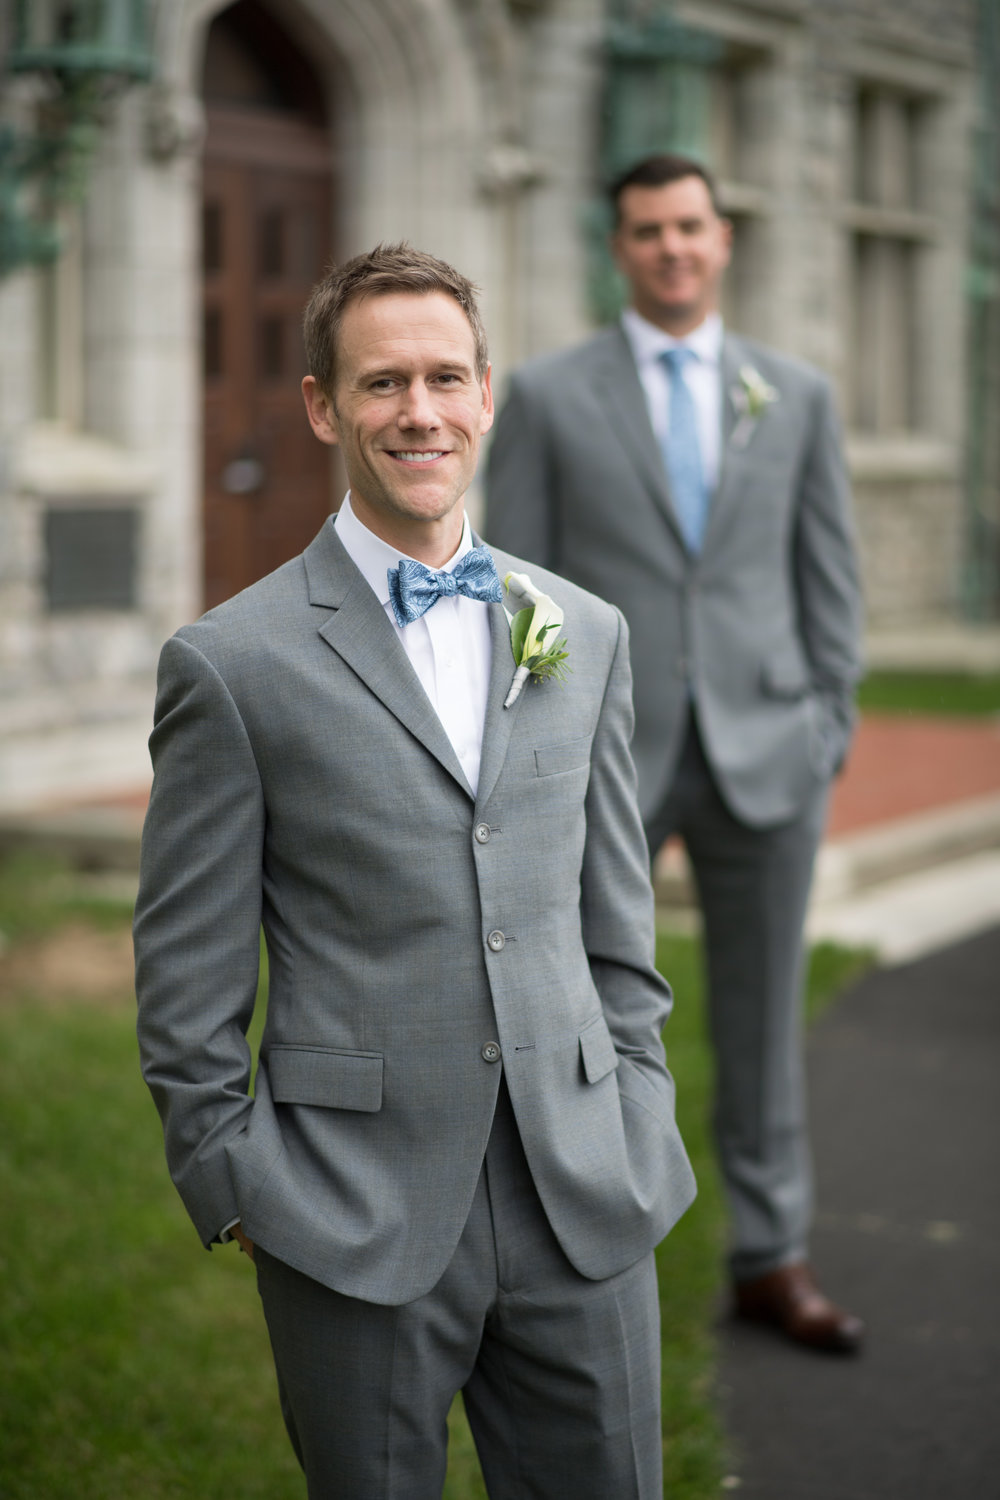 Same Sex Wedding Philadelphia Wedding PLanner LGBT Wedding005.jpg